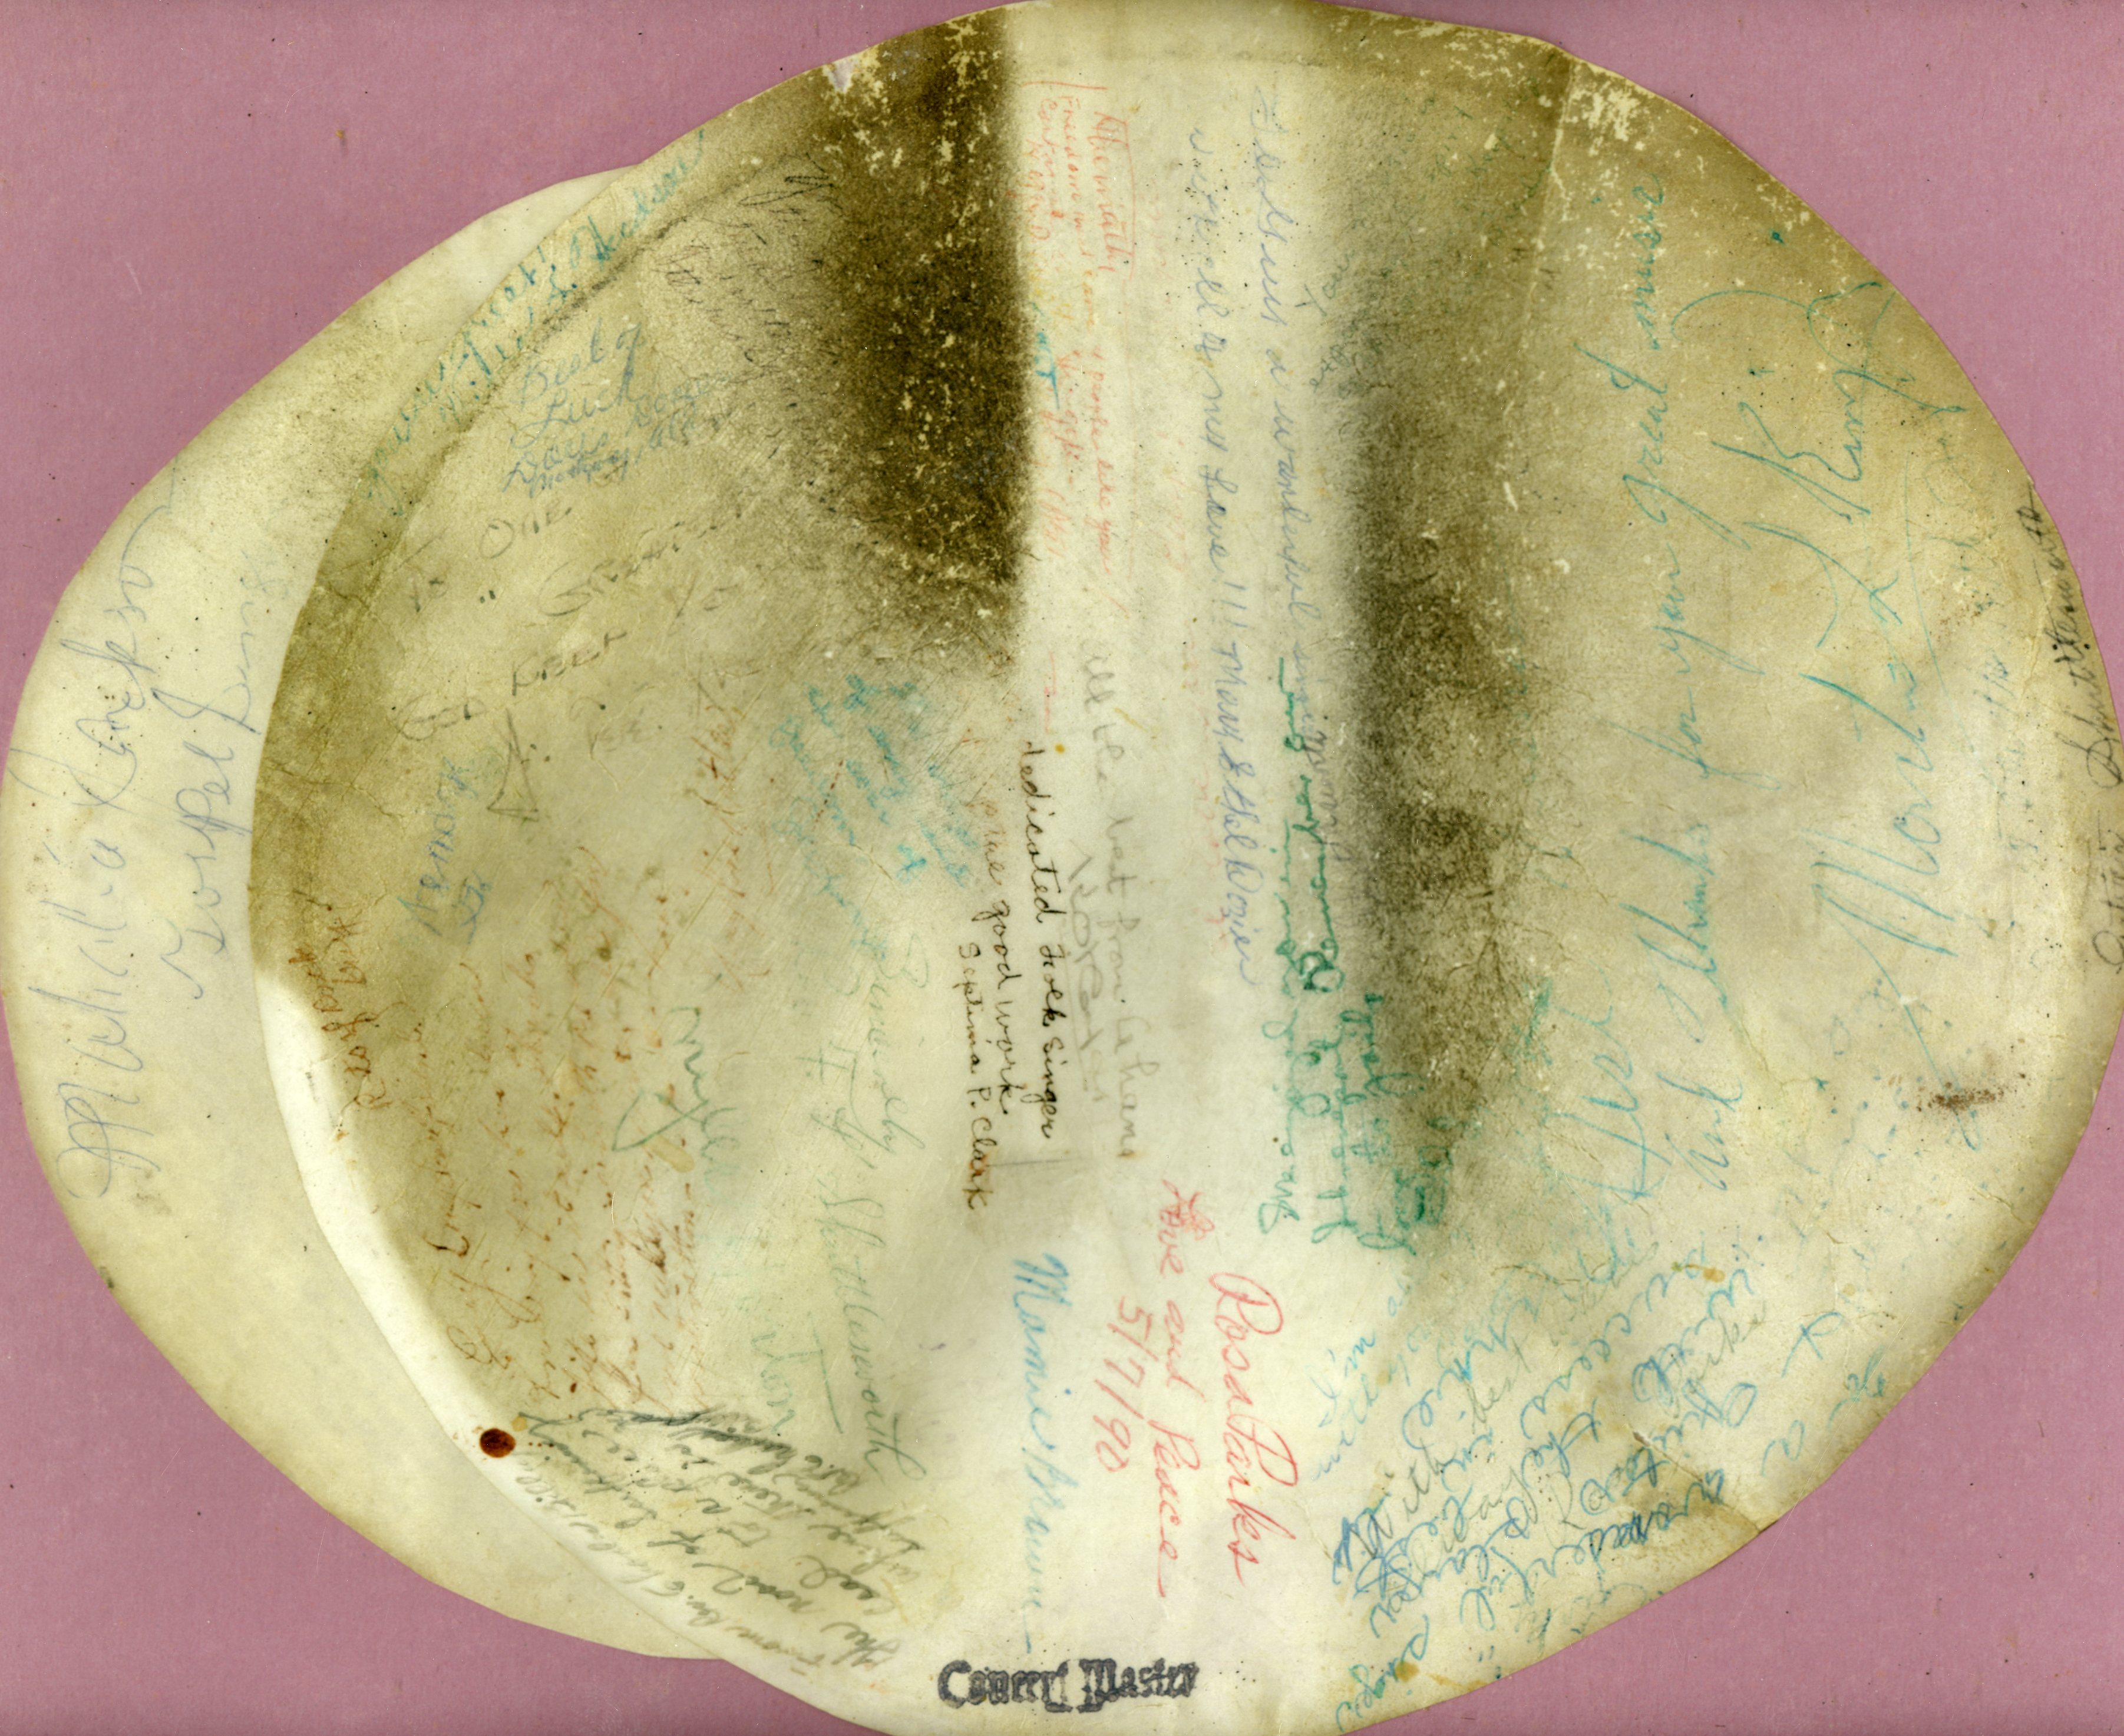 Carawan's banjo head, signed by Dr. Martin Luther King, Jr., Rosa Parks, Septima Clark, Fred Shuttlesworth and many more